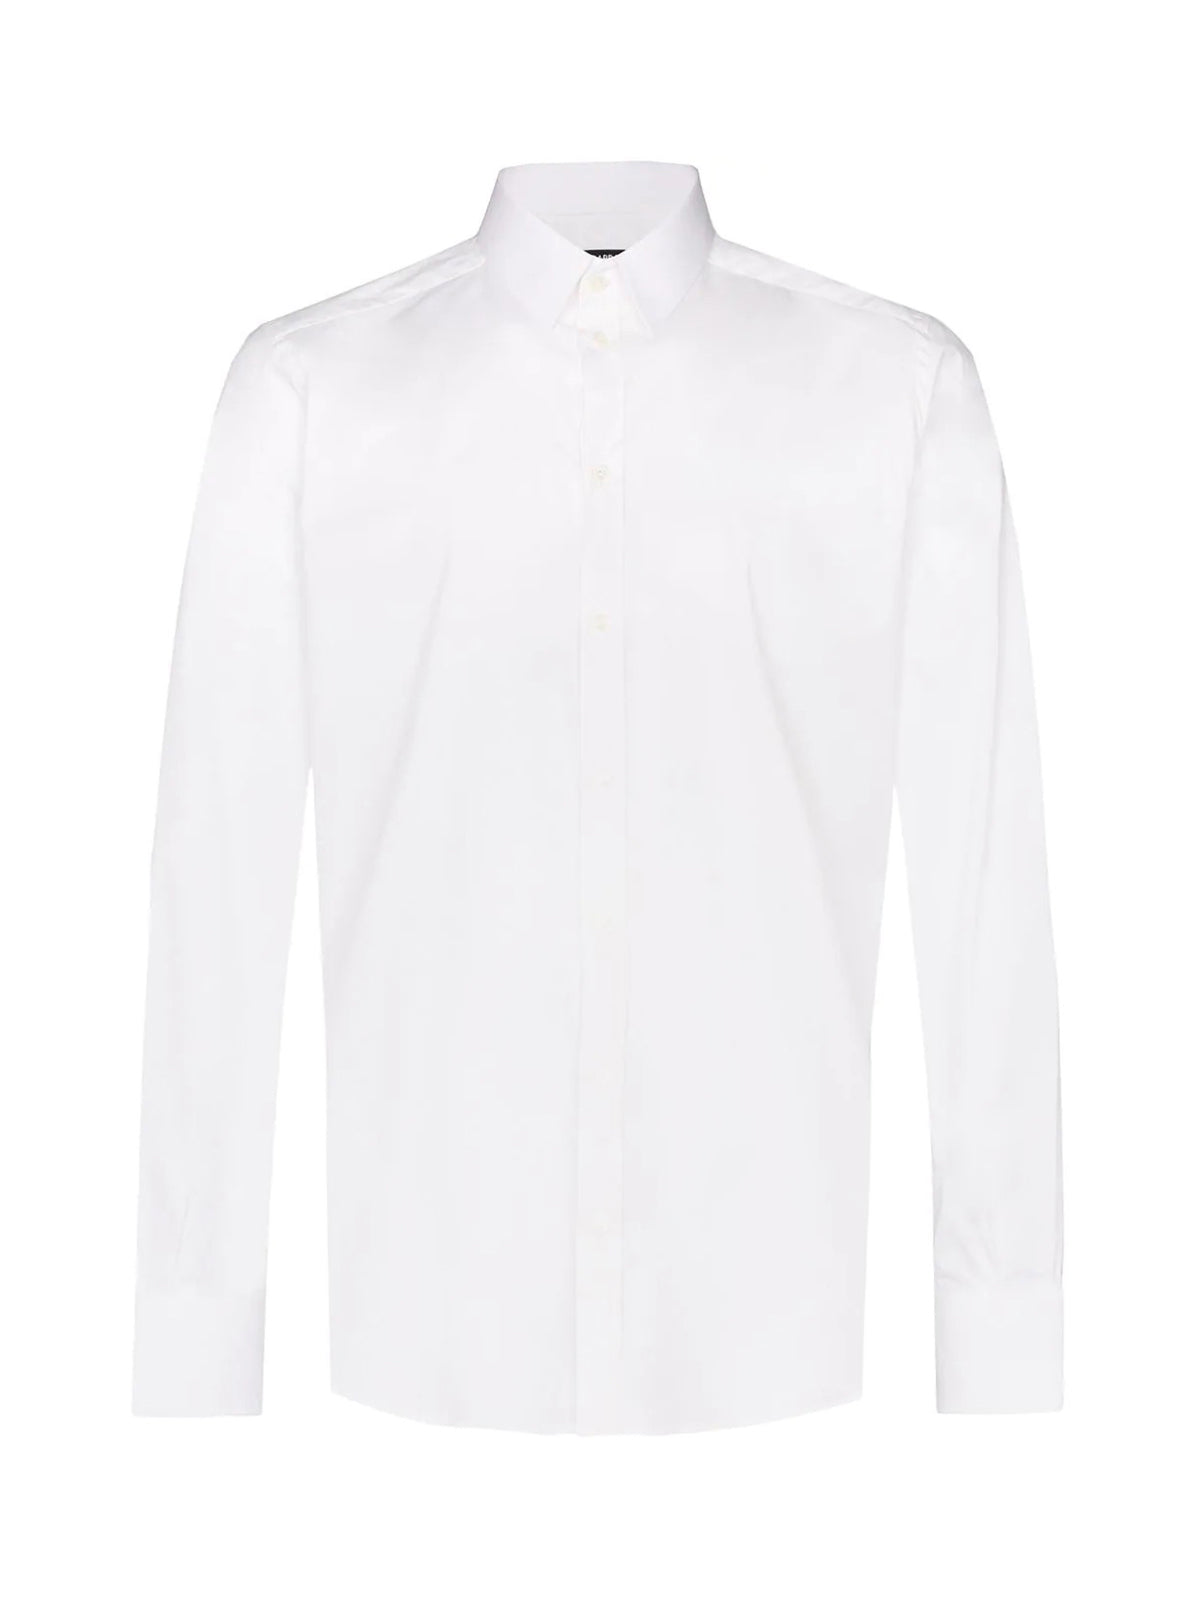 MONOCHROME BASIC SHIRT